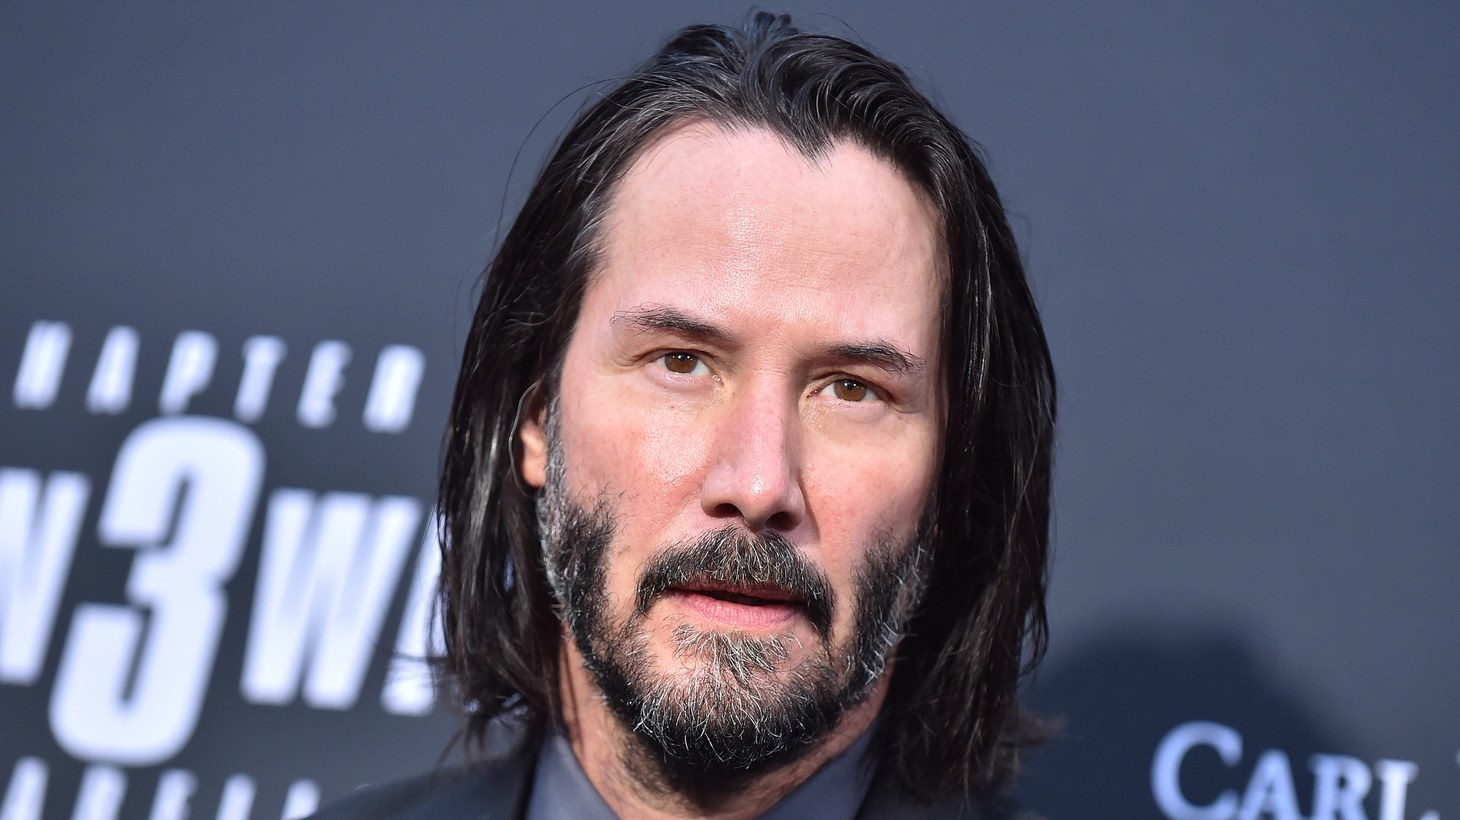 """Keanu Reeves arrives for the """"John Wick: Chapter 3 — Parabellum"""" special screening on May 15, 2019 in Hollywood, CA."""